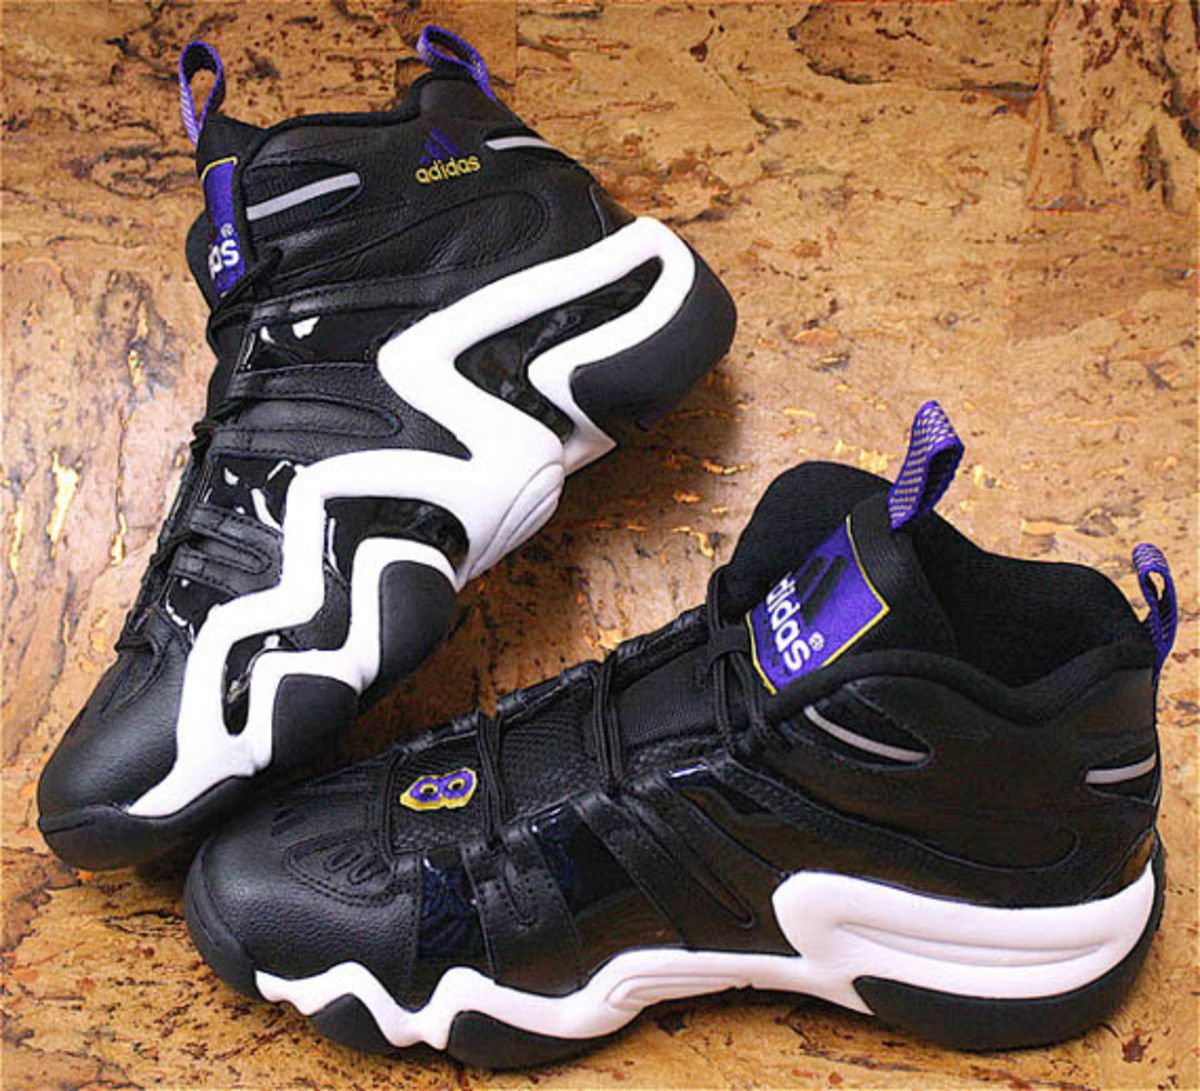 adidas Crazy 8 - Kobe Bryant 1998 NBA All-Star Game